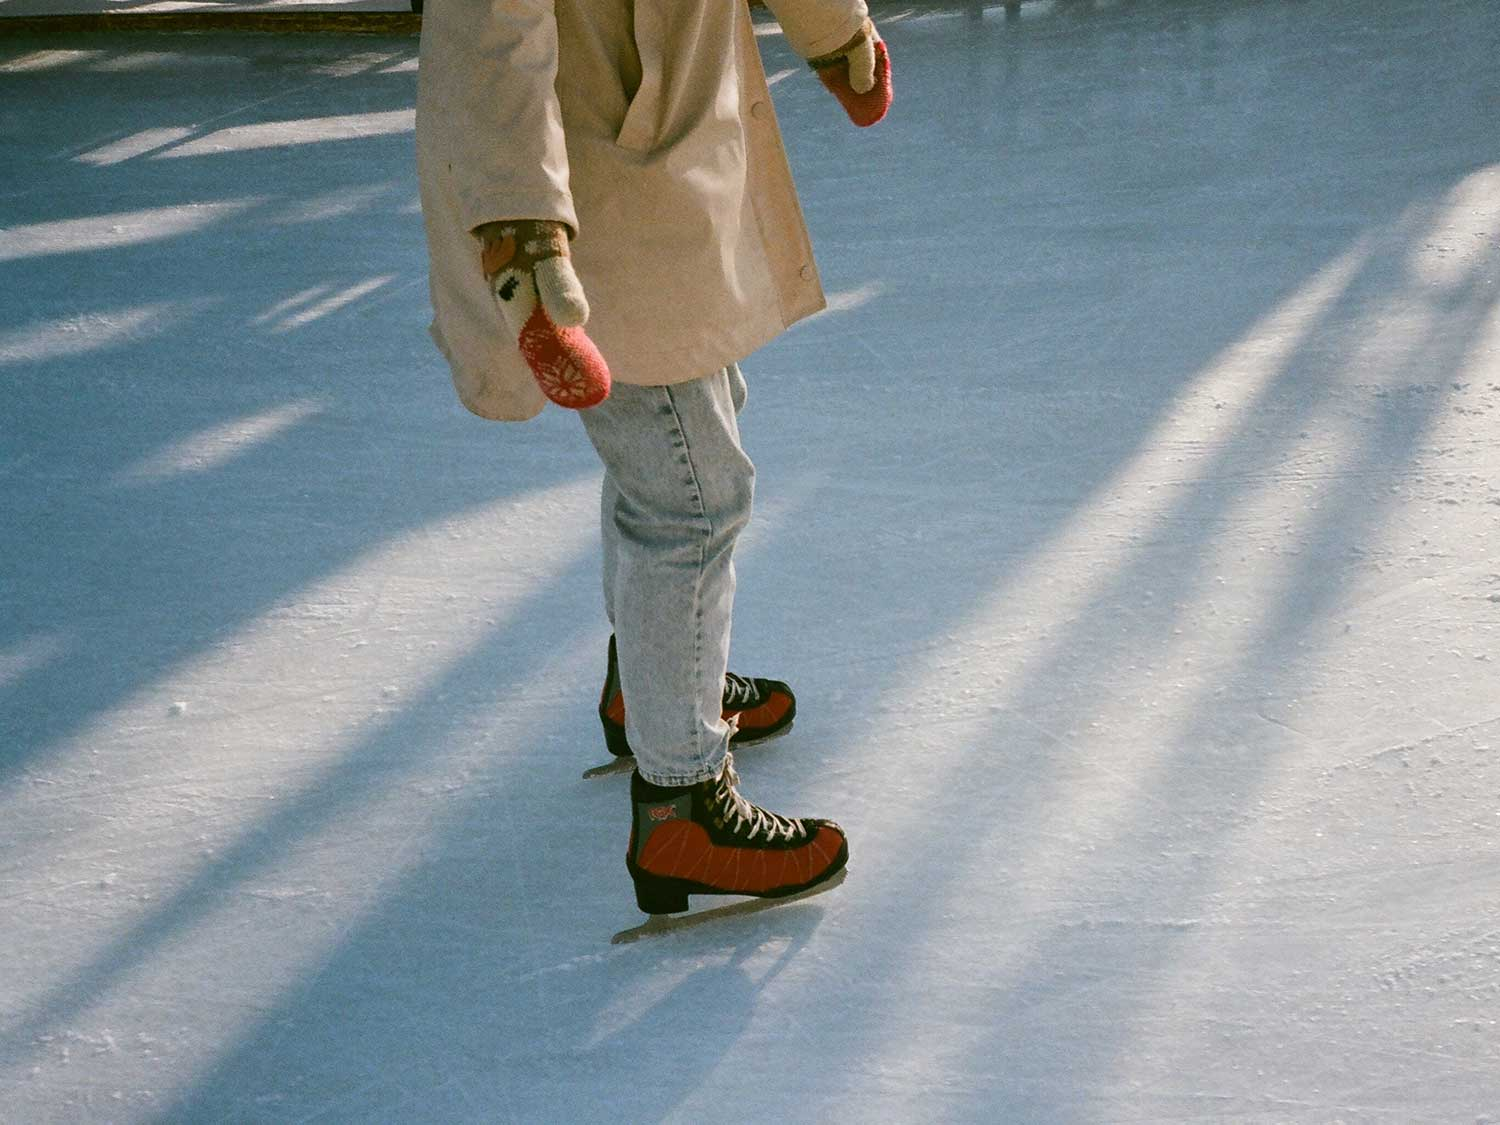 Woman ice skating with gloves warmed with hand warmers.